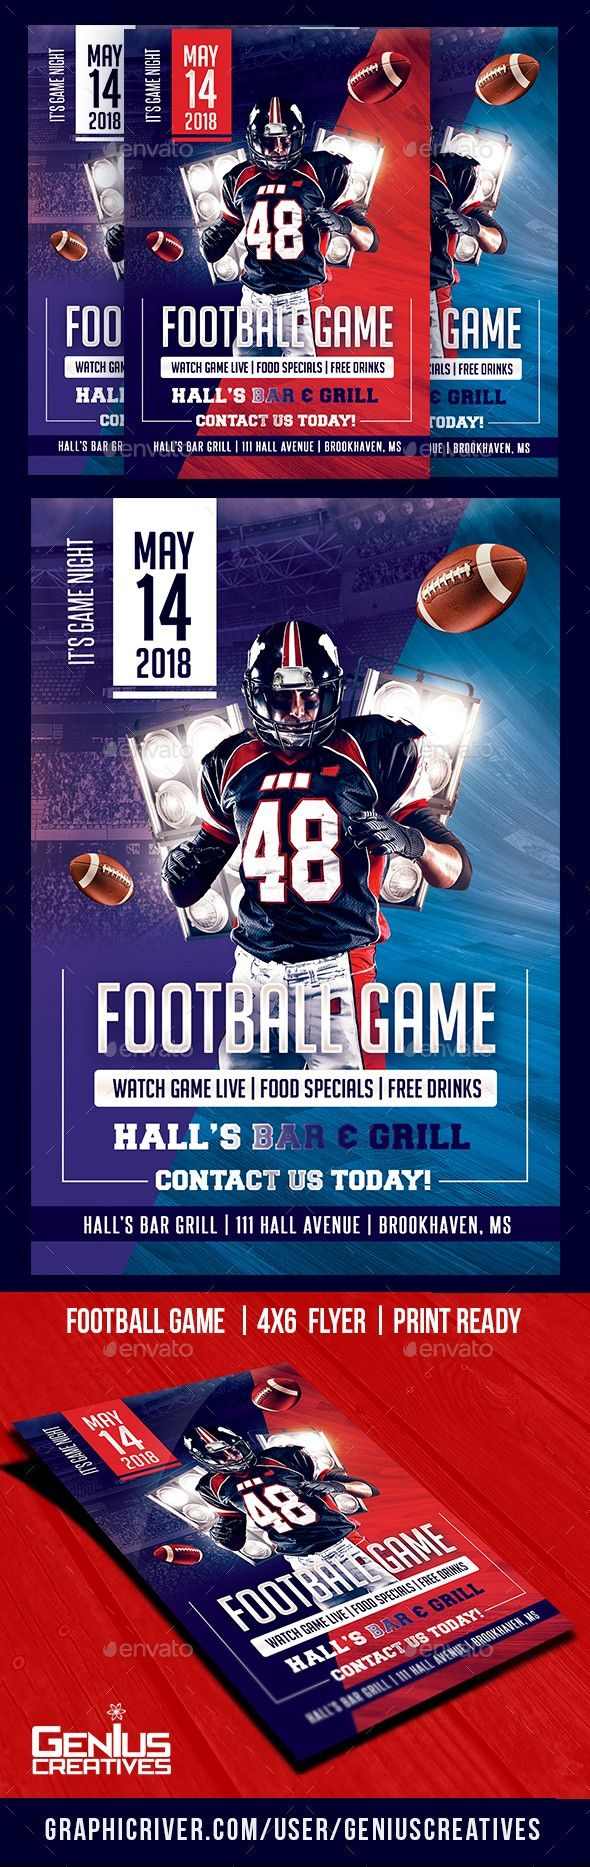 Football GameDay Flyer Template Football ball, Game day